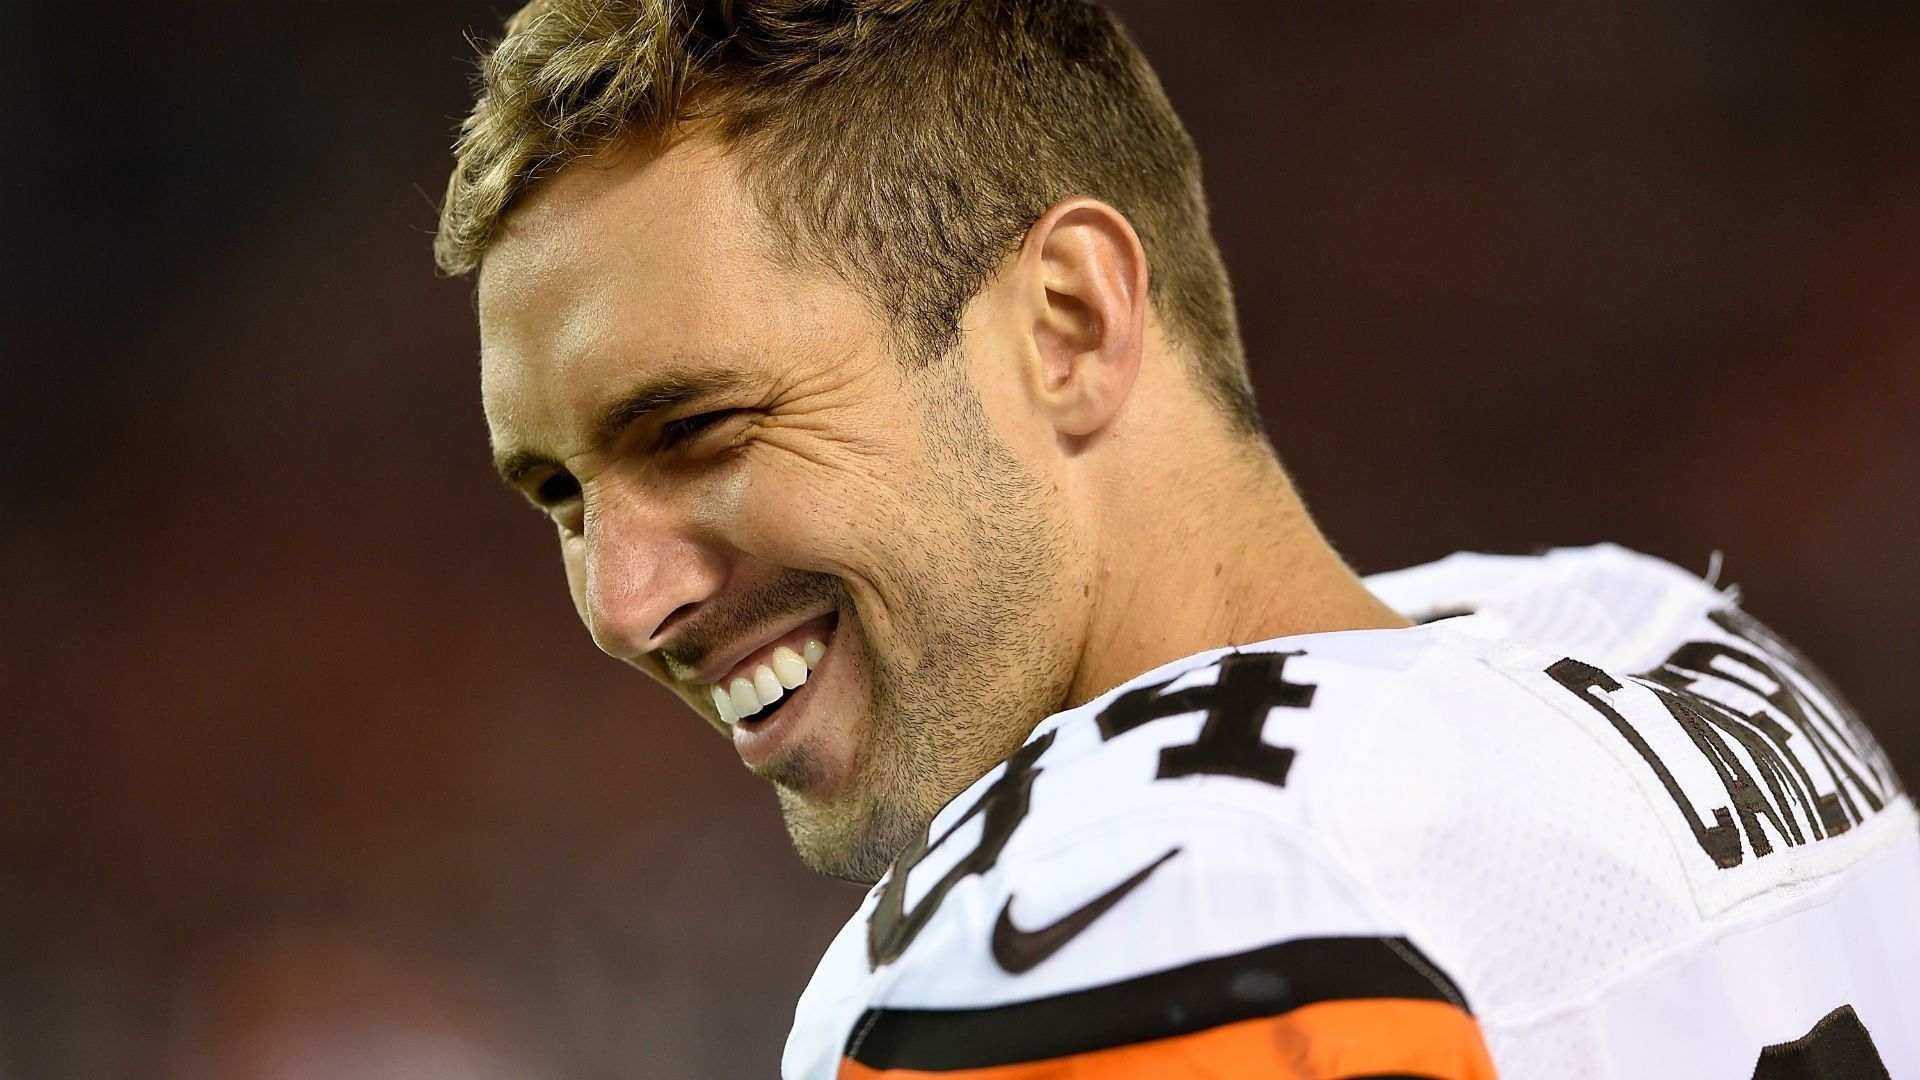 Jordan Cameron Wallpaper Image Group 30 1920x1080